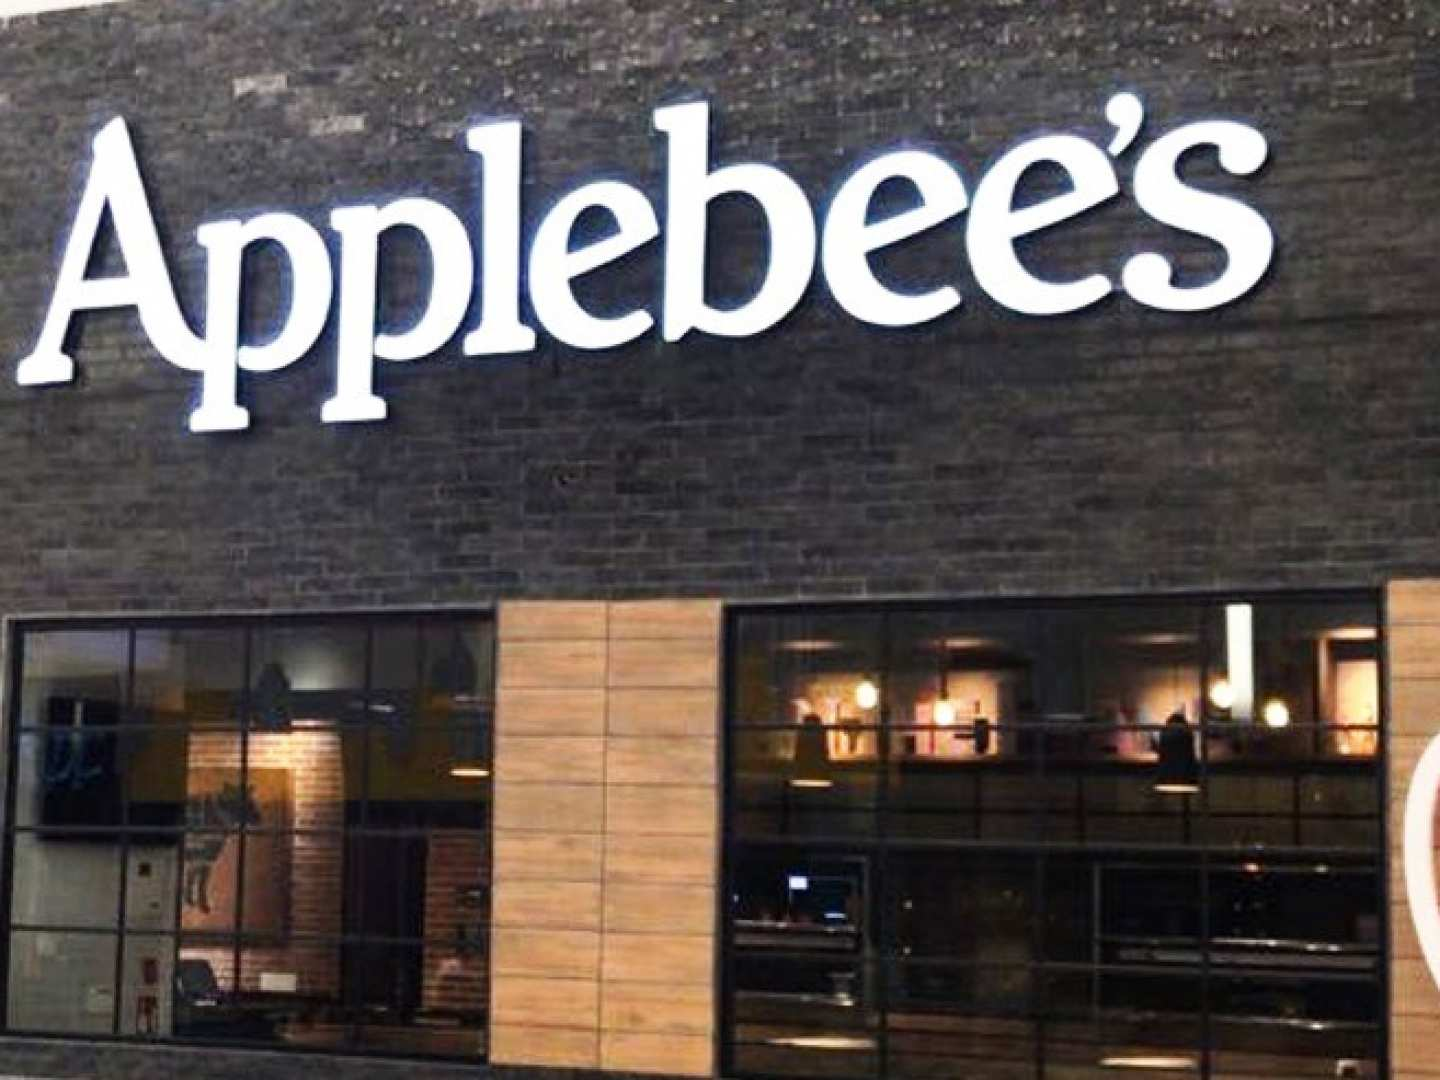 Applebee's (Altaplaza Mall)